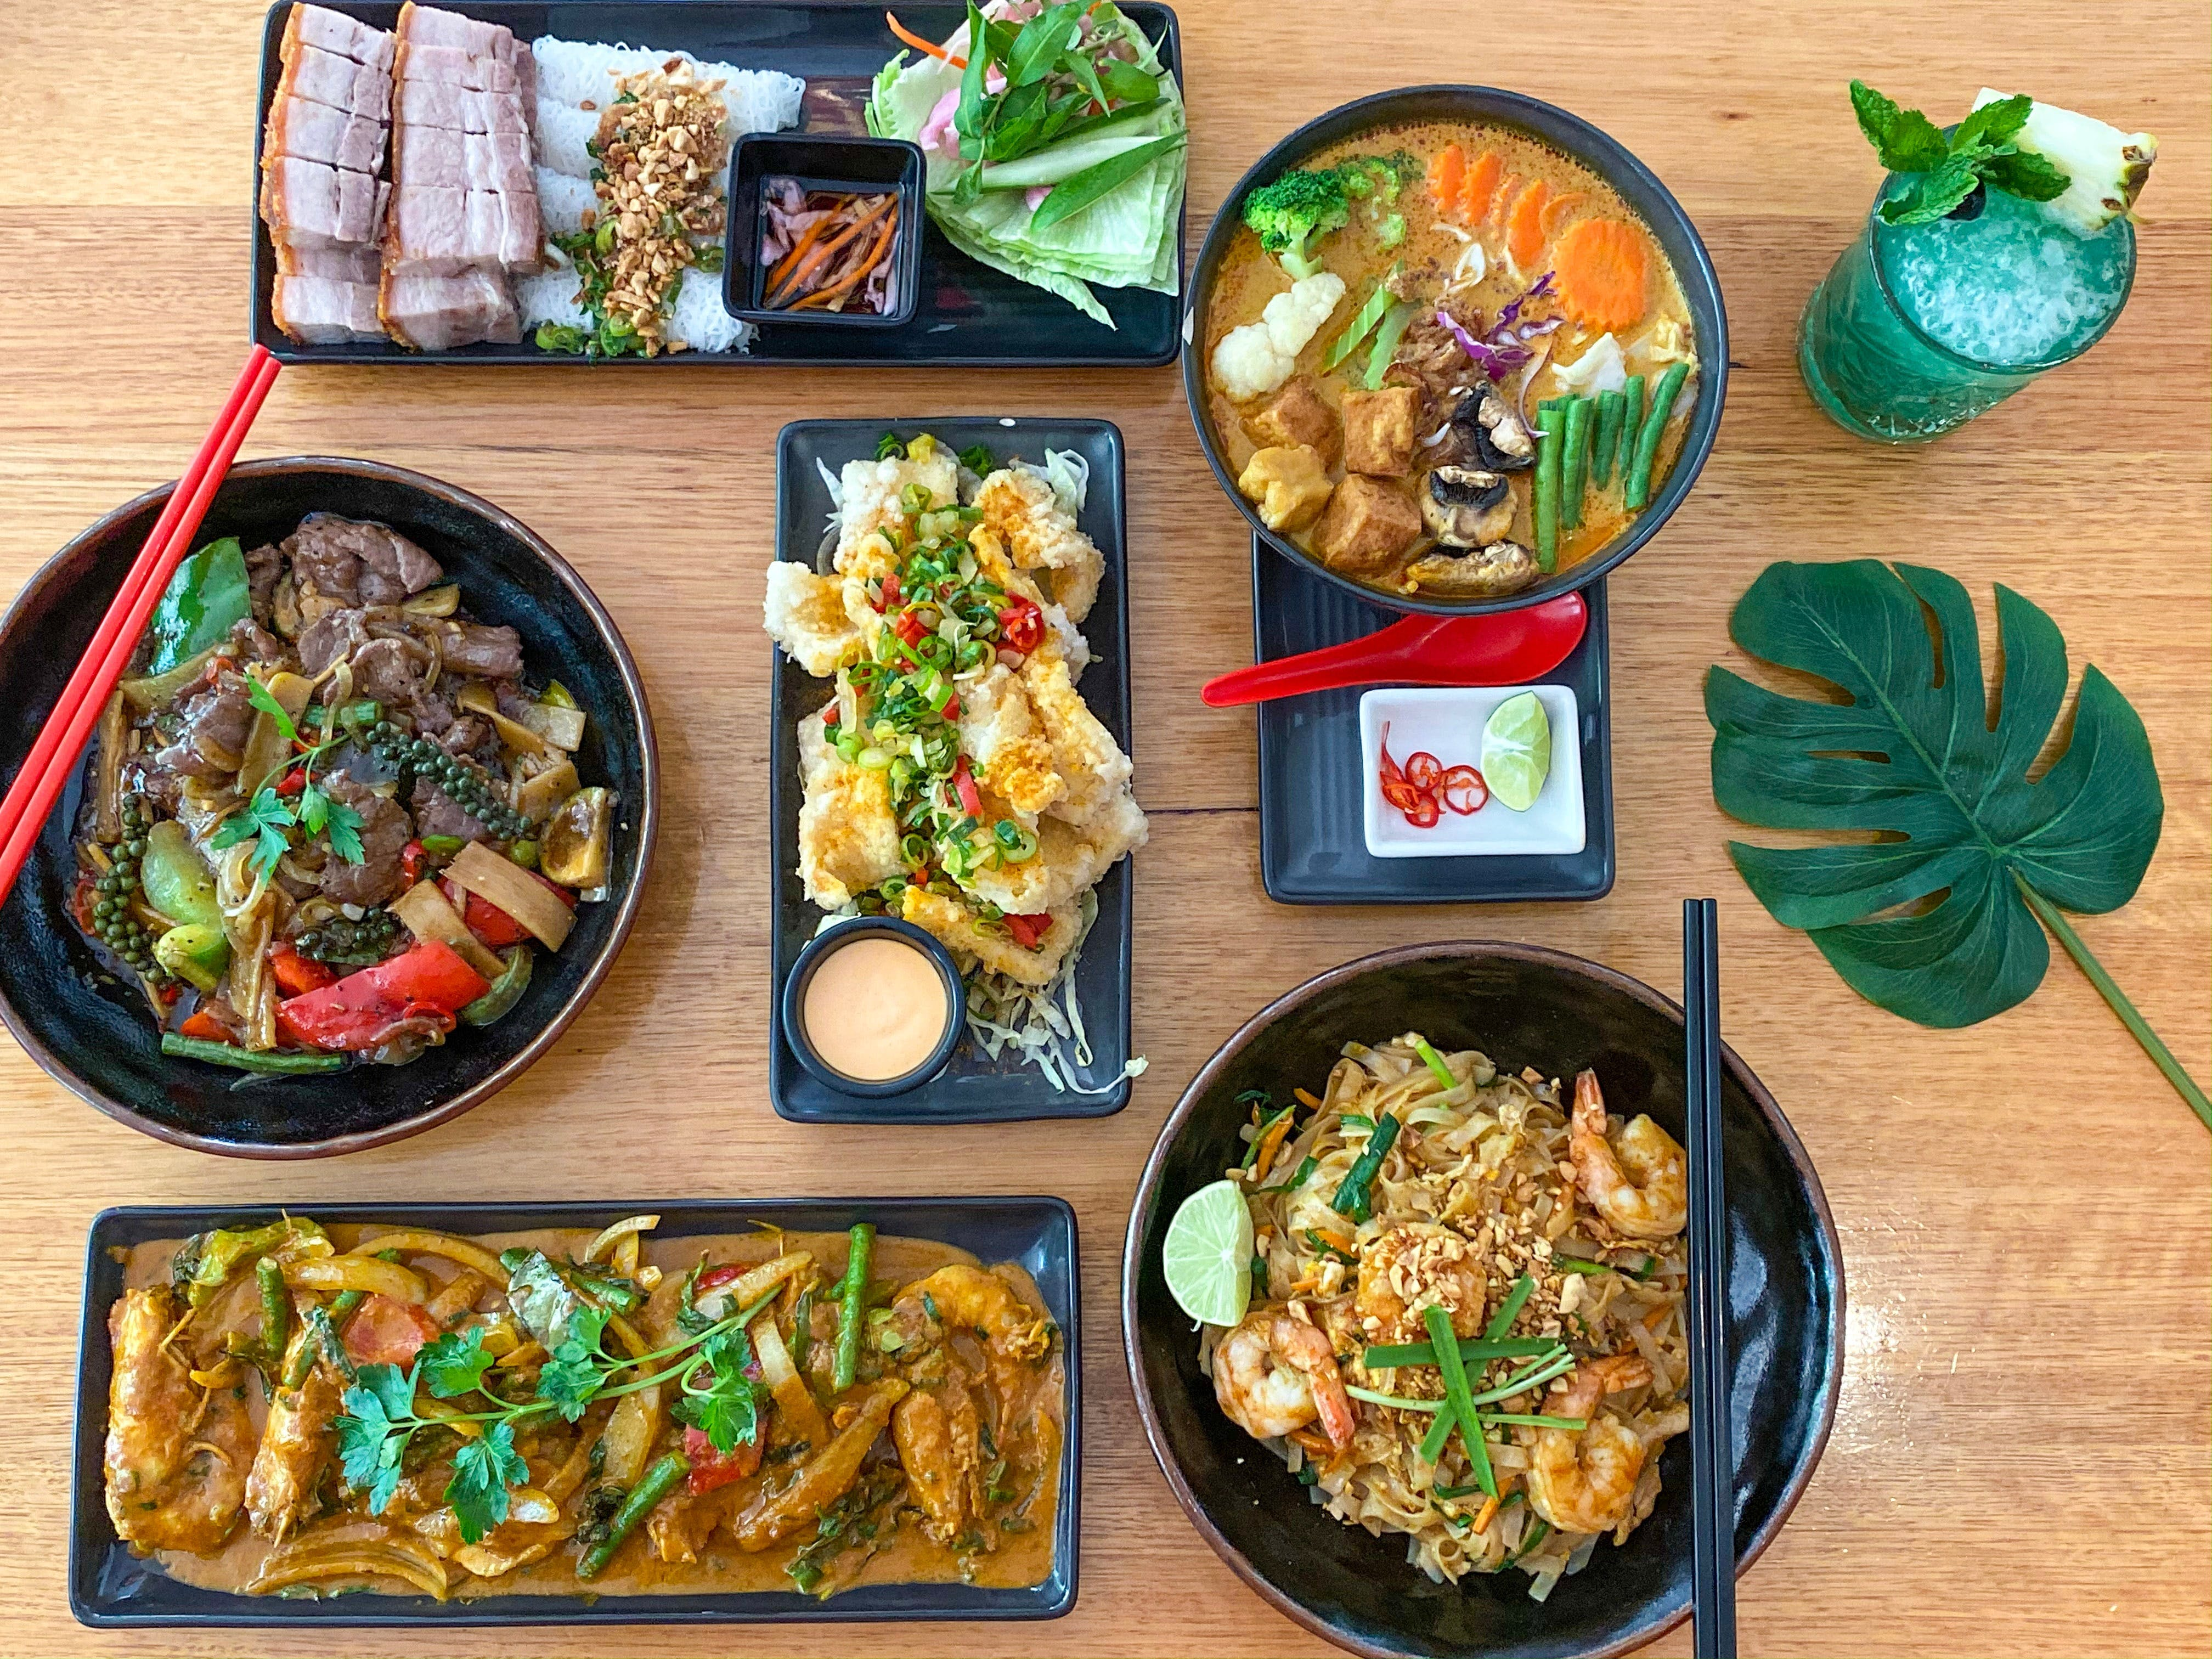 Chow A Taste of South East Asia - Pubs Perth